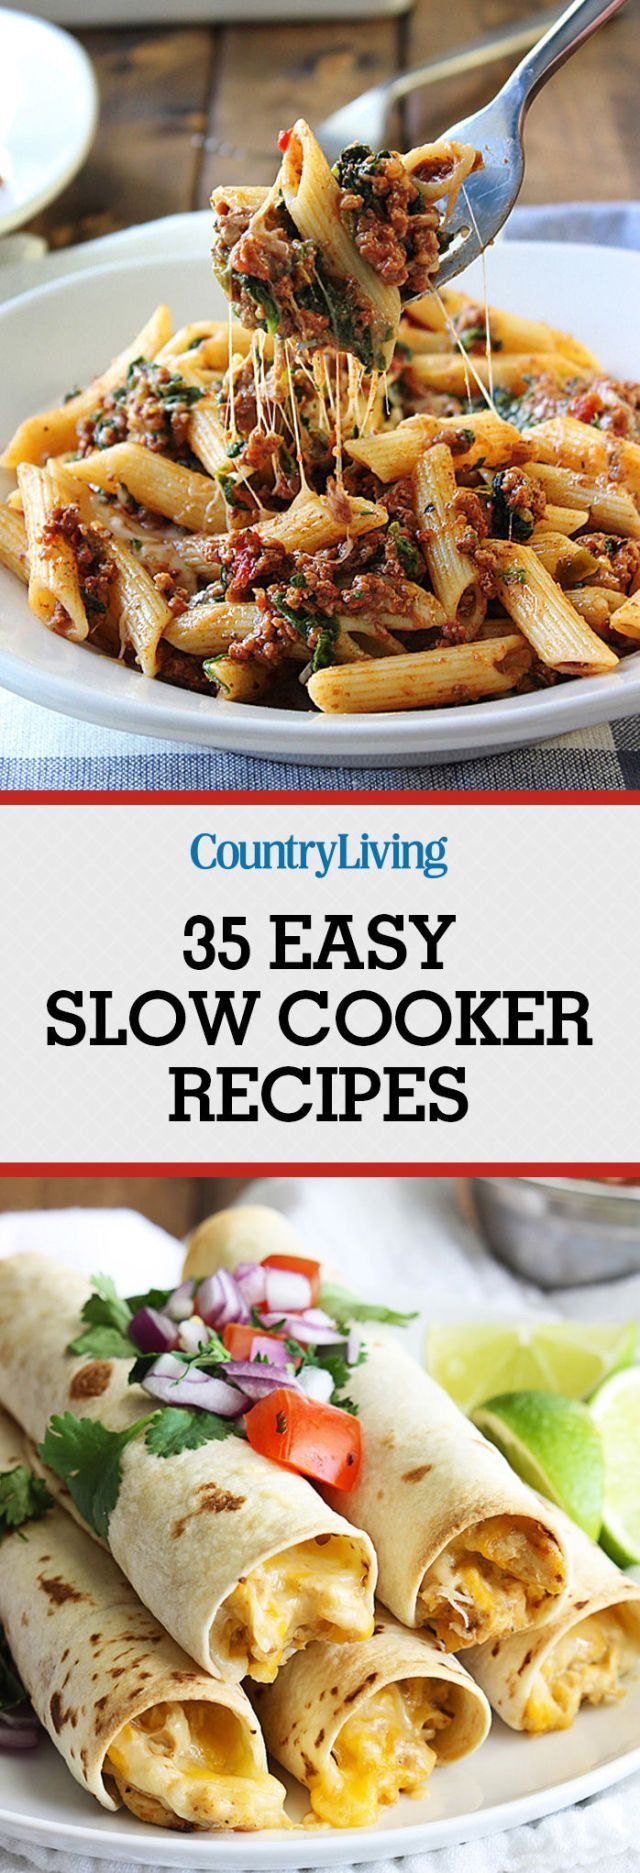 50 easy slow cooker recipes for busy winter nights for Country living magazine recipes